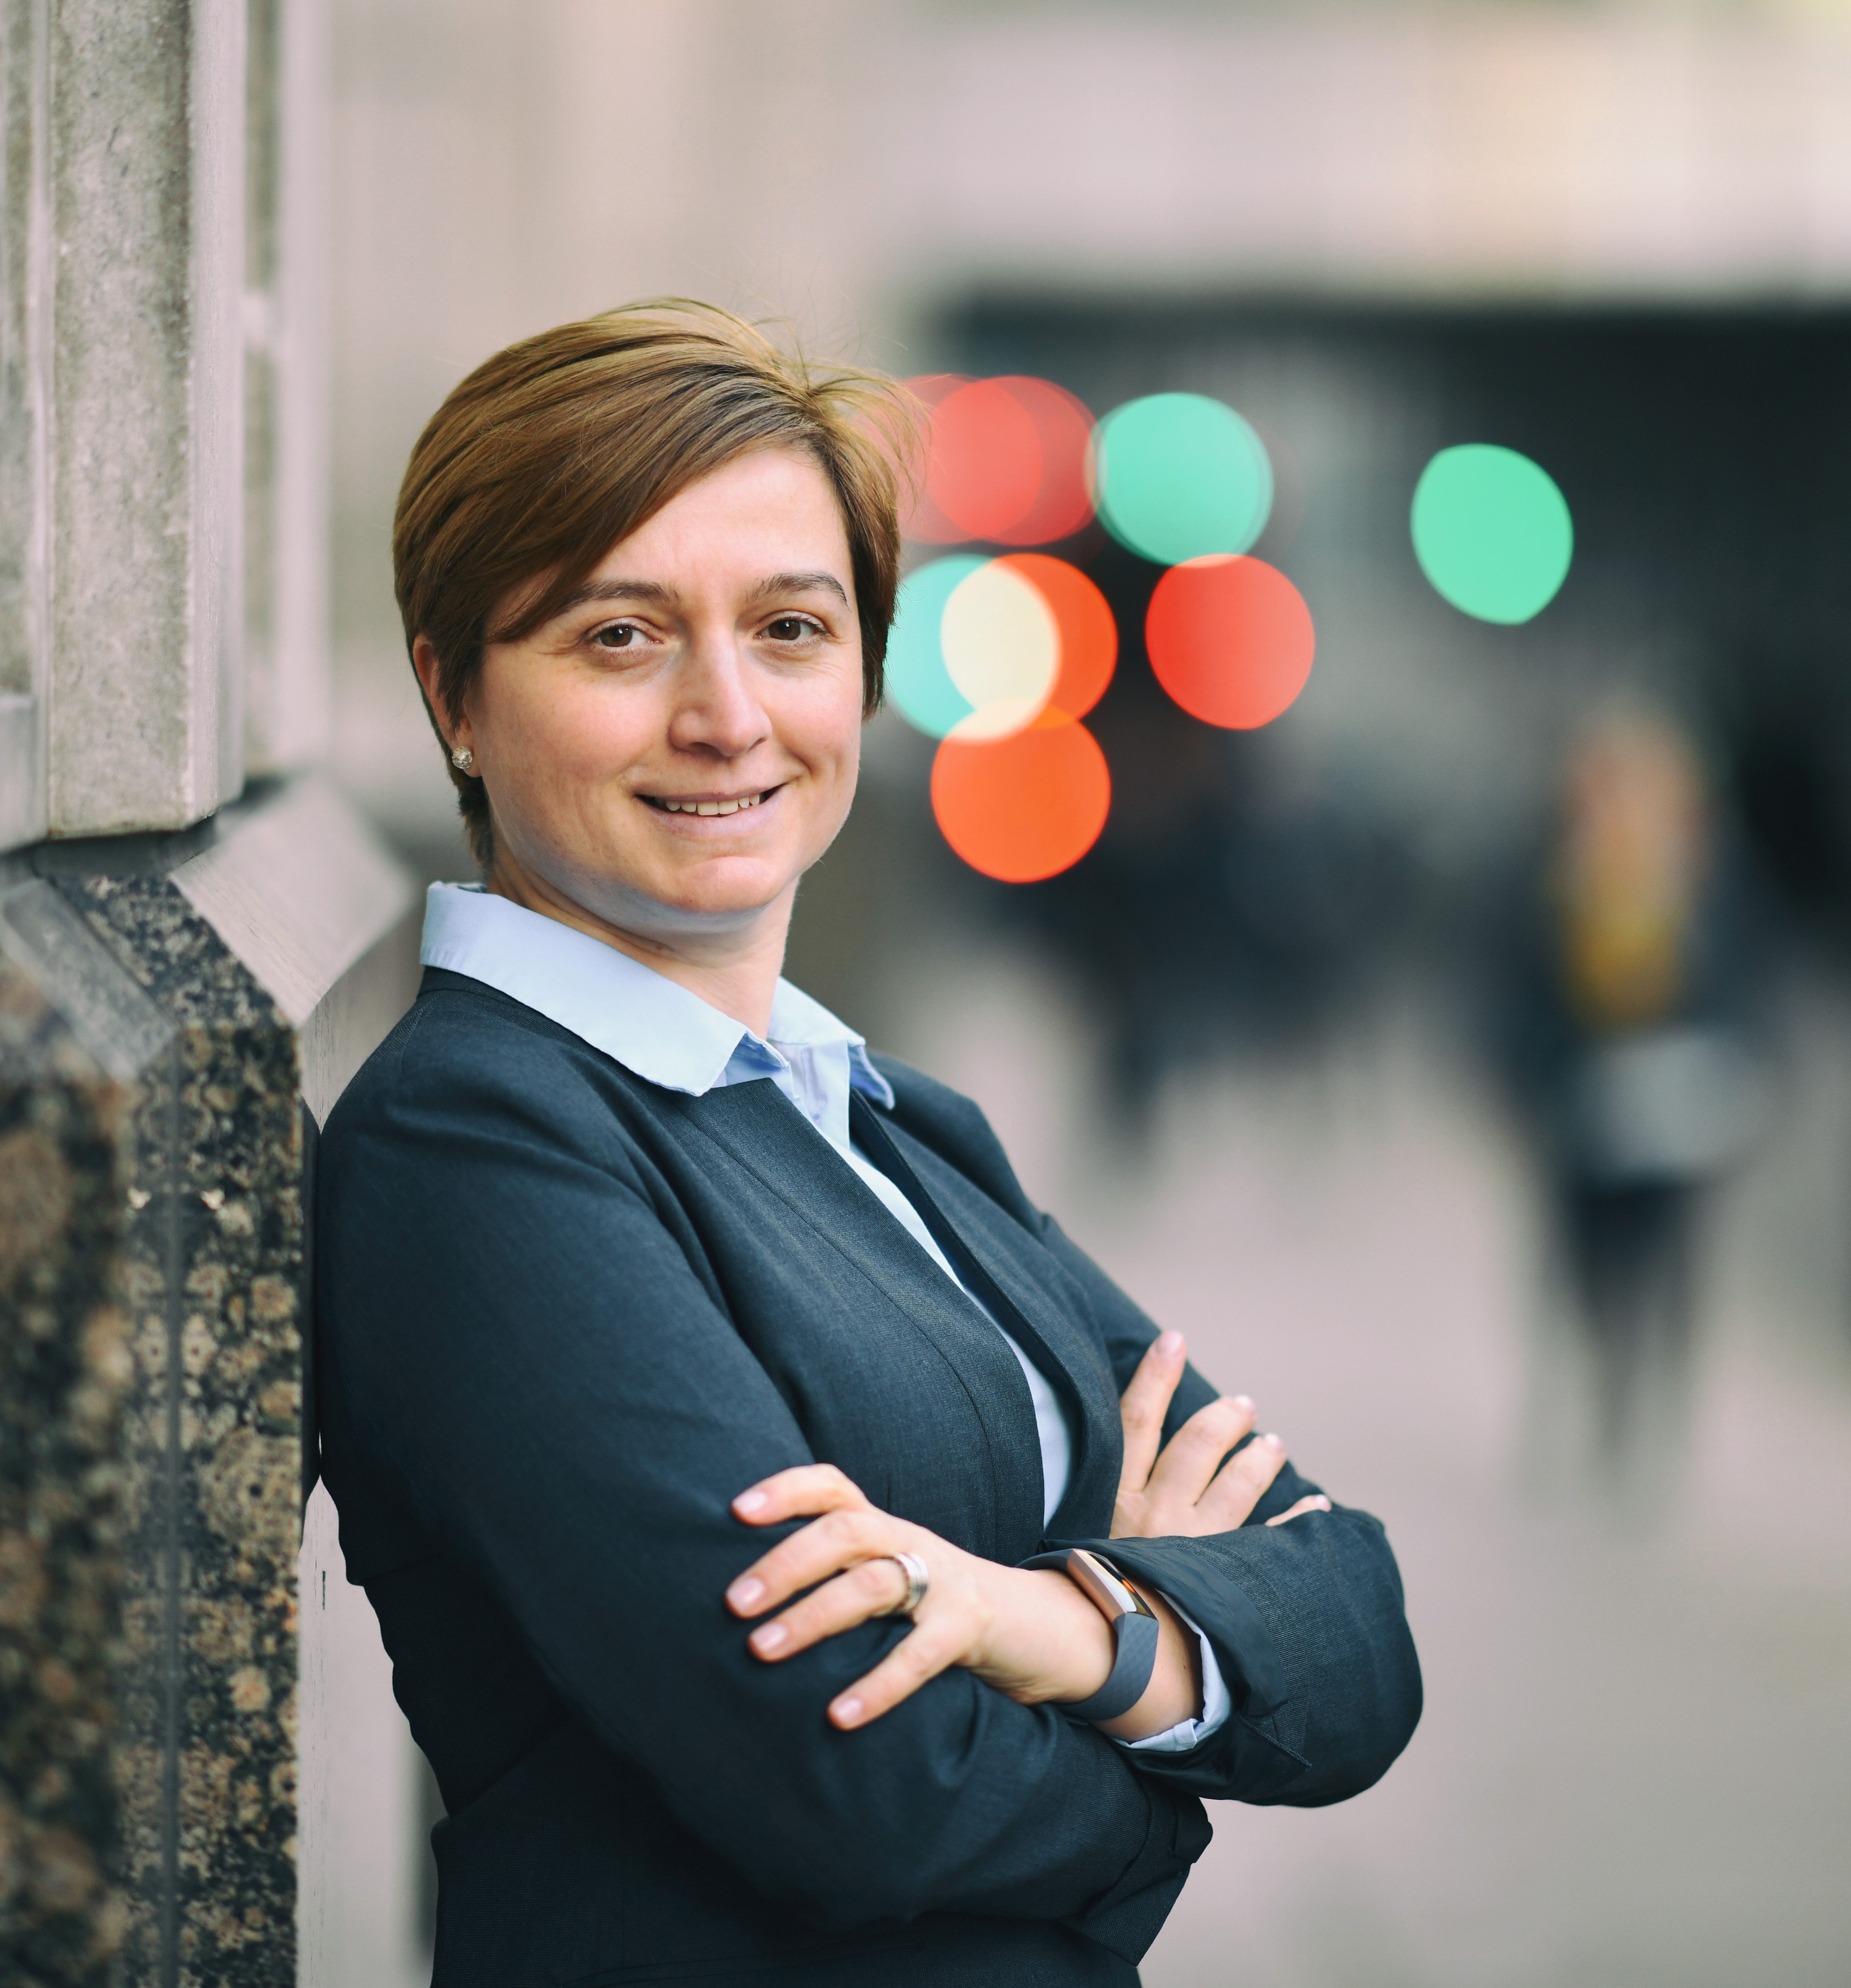 Women Business Portrait